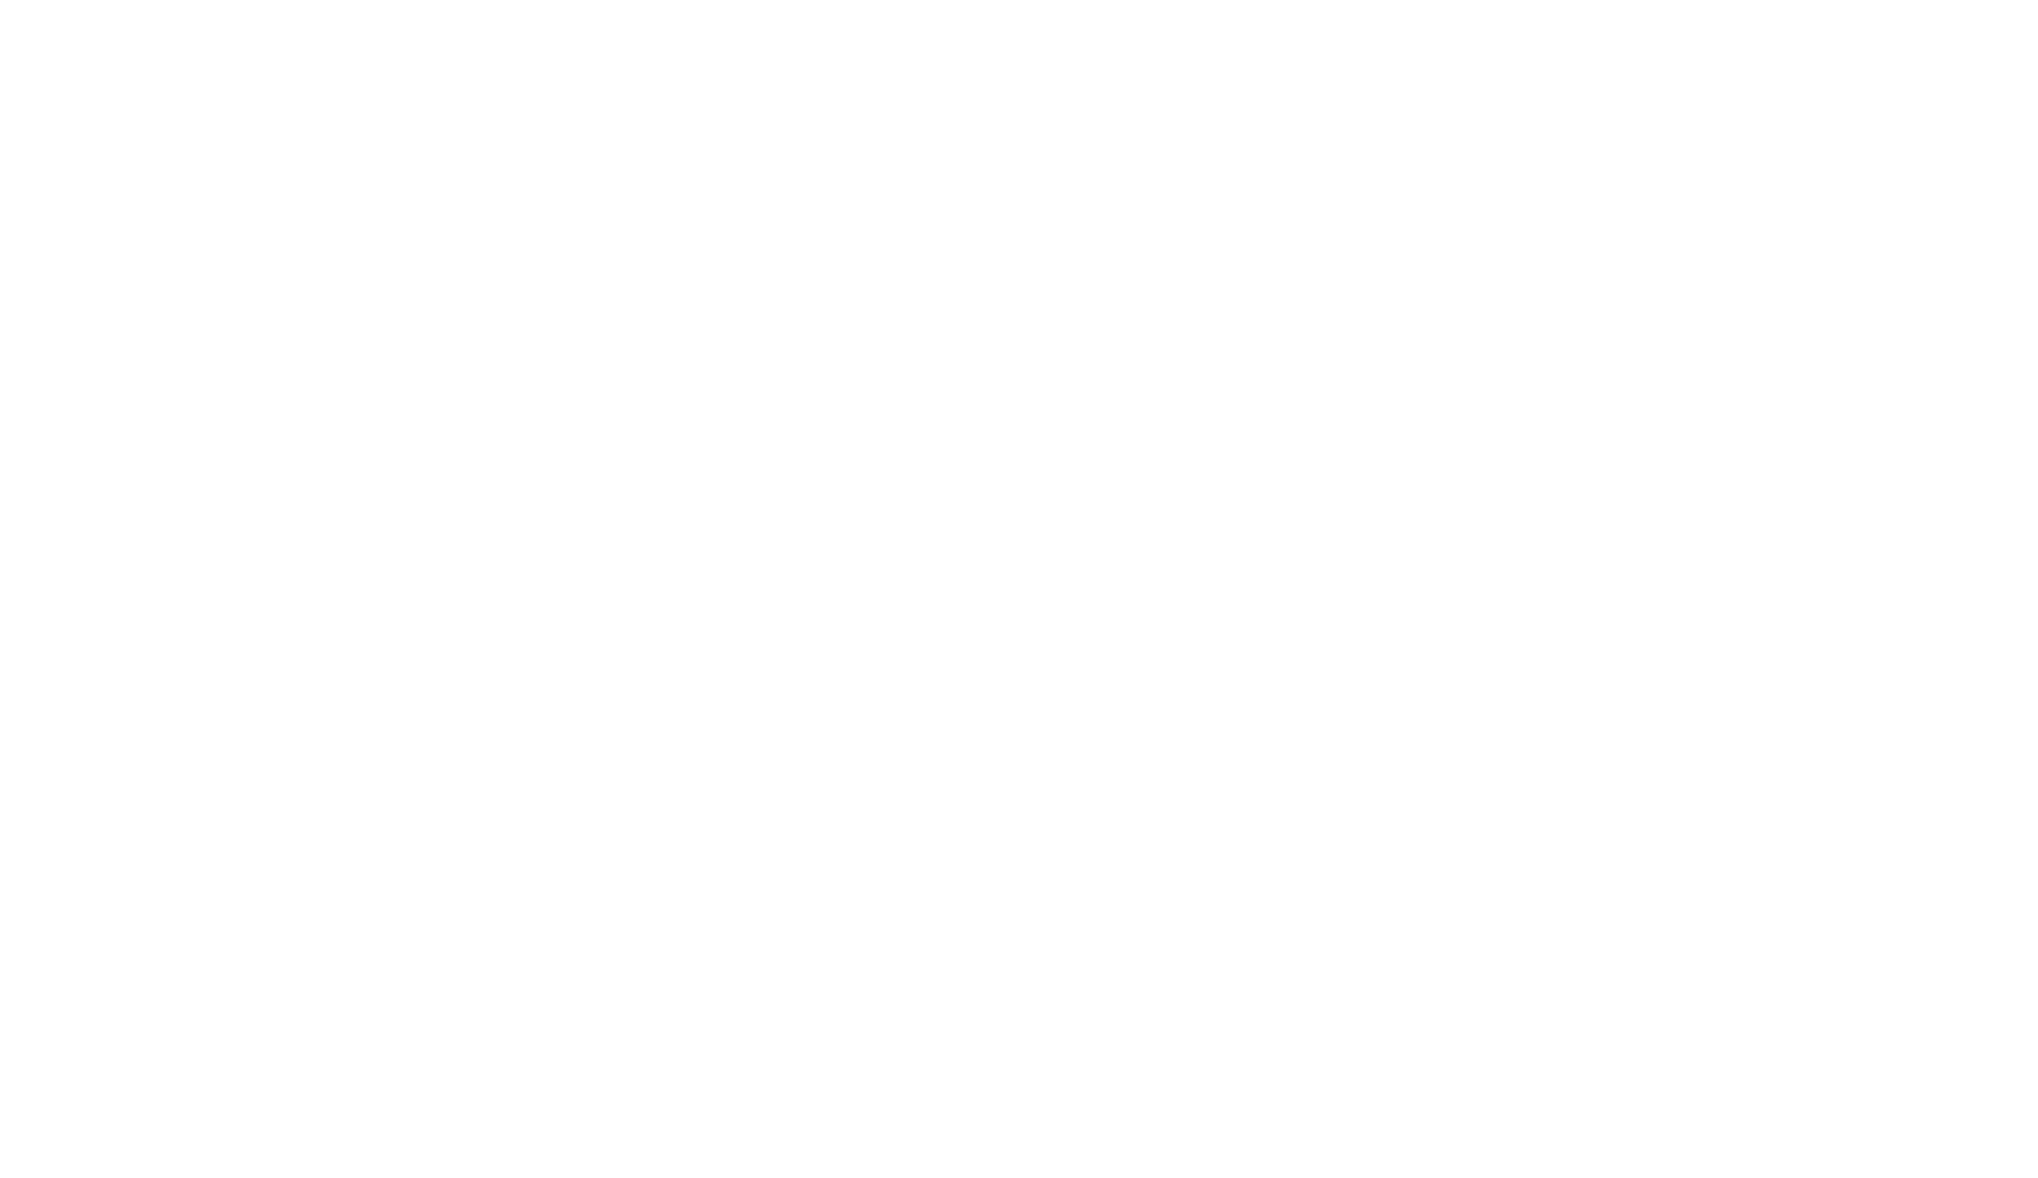 Kodak Moments Throughout Wind River Country